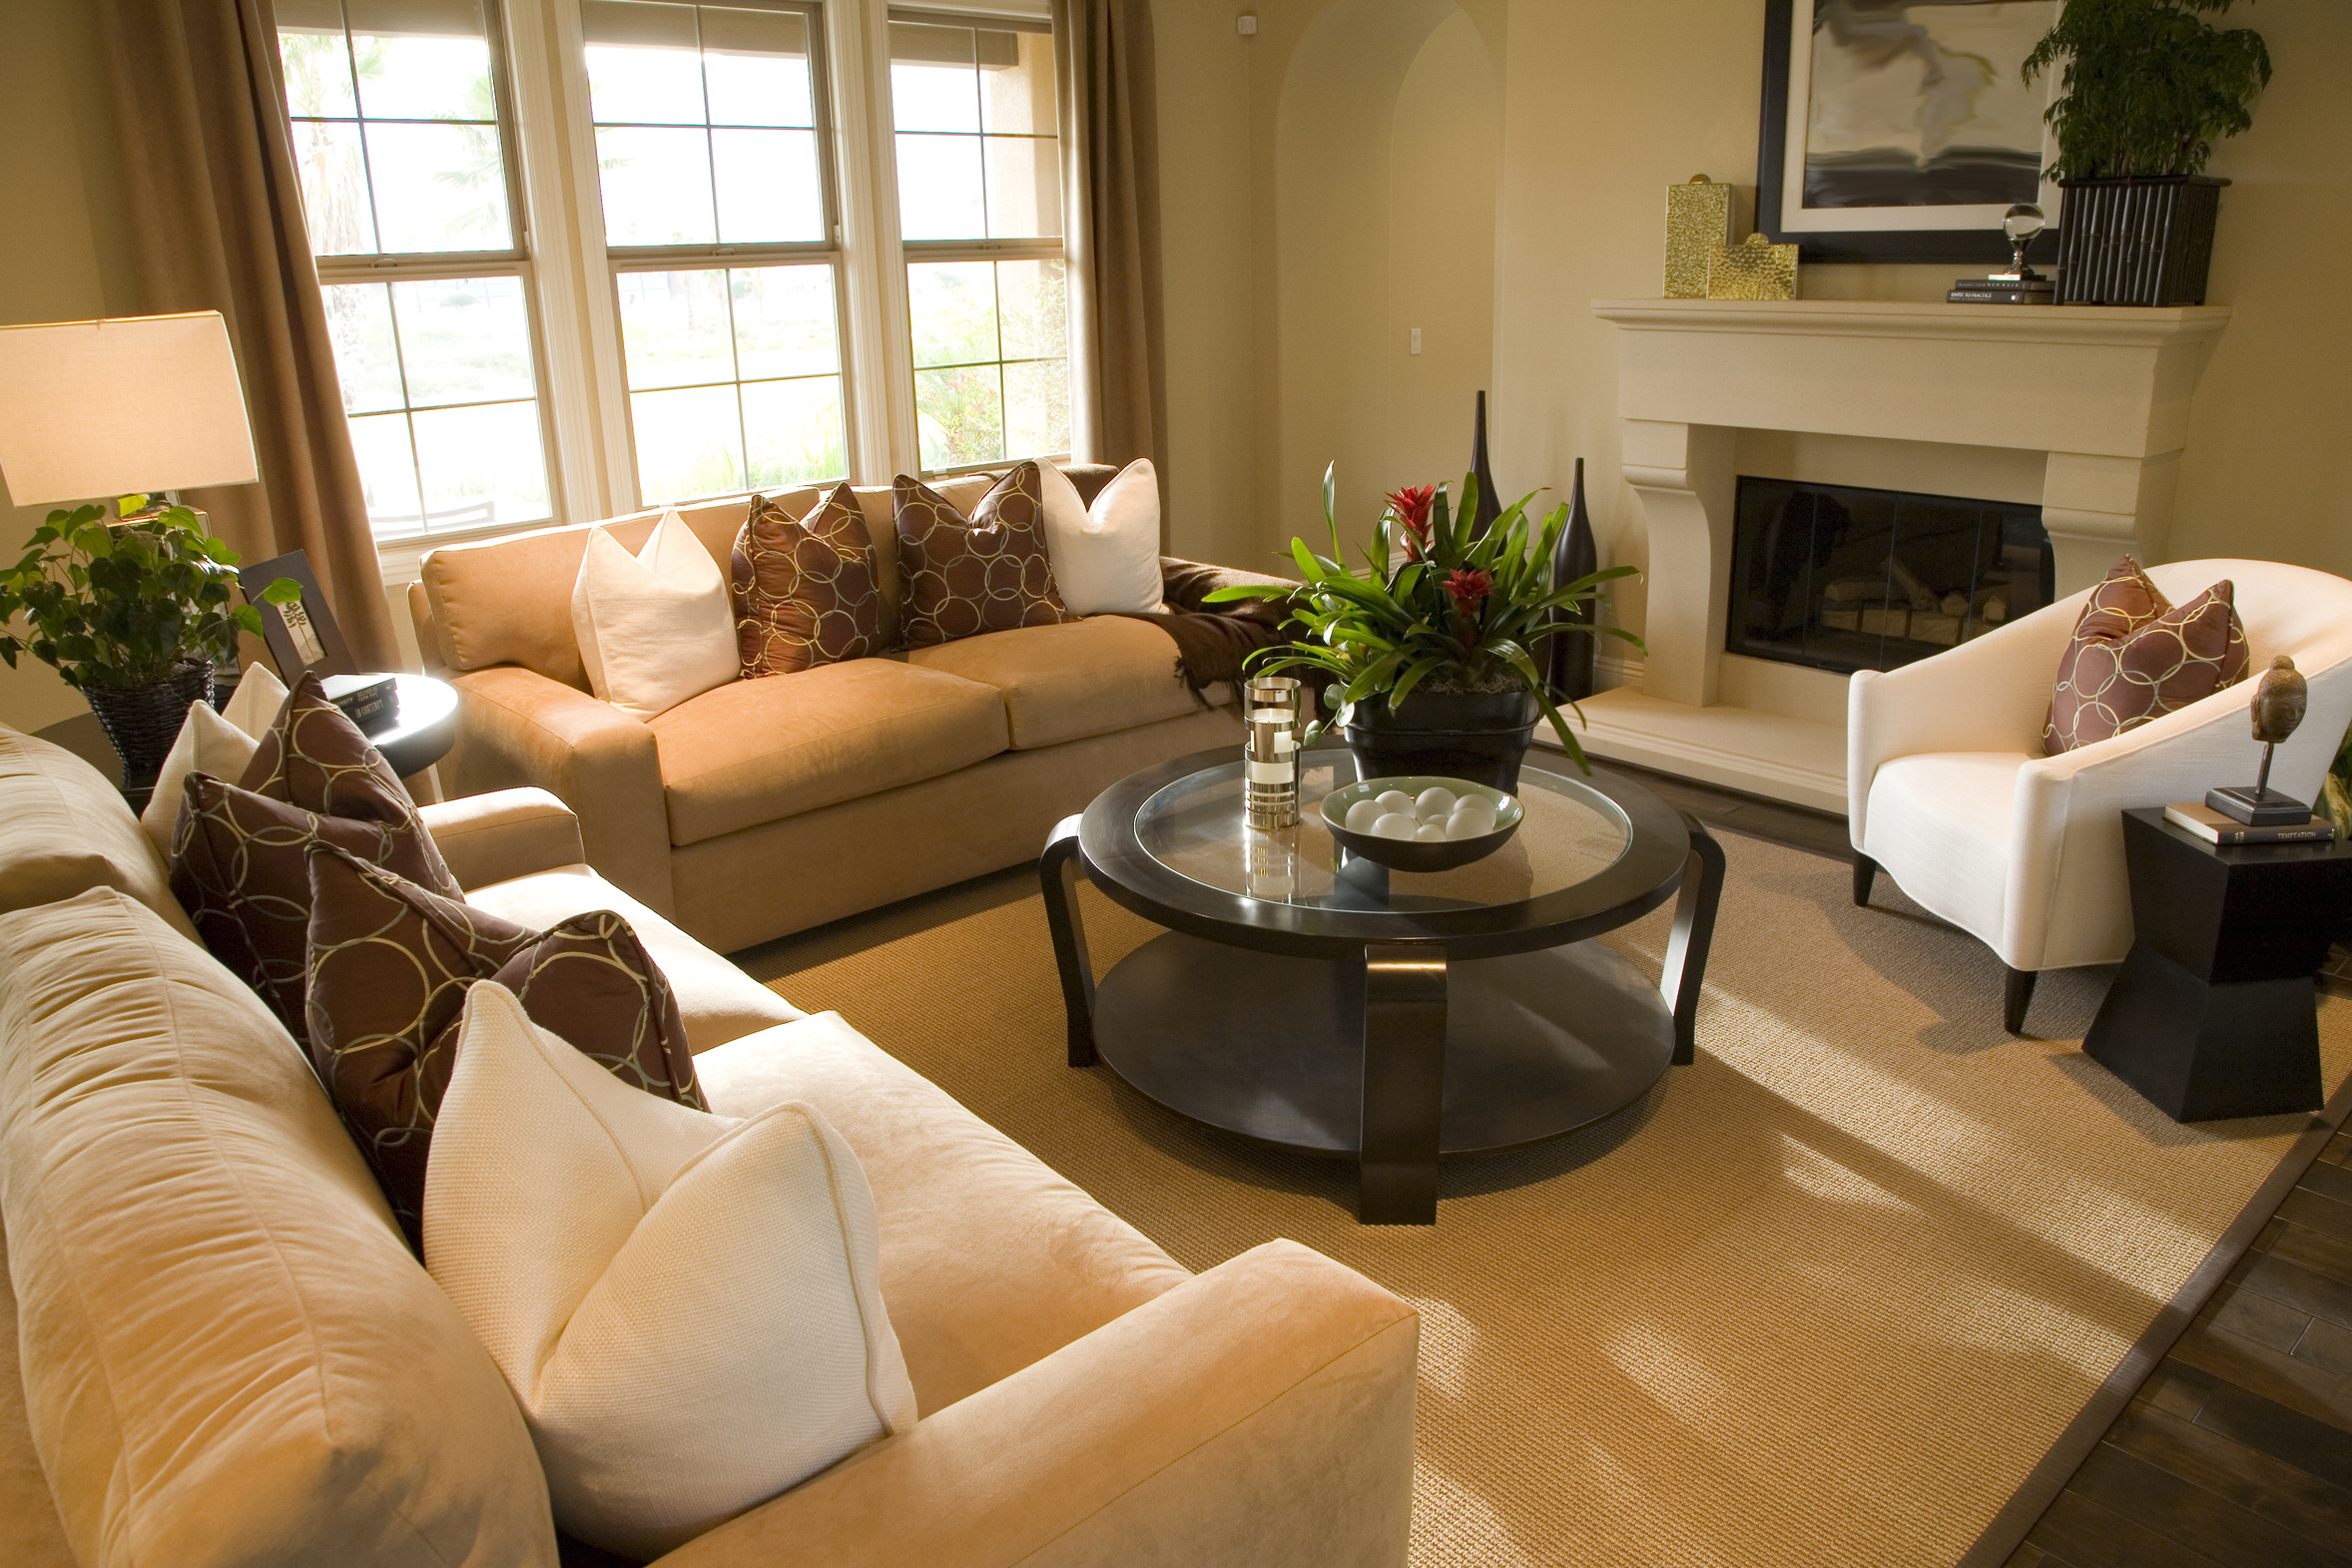 priority concepts interior design ottawa